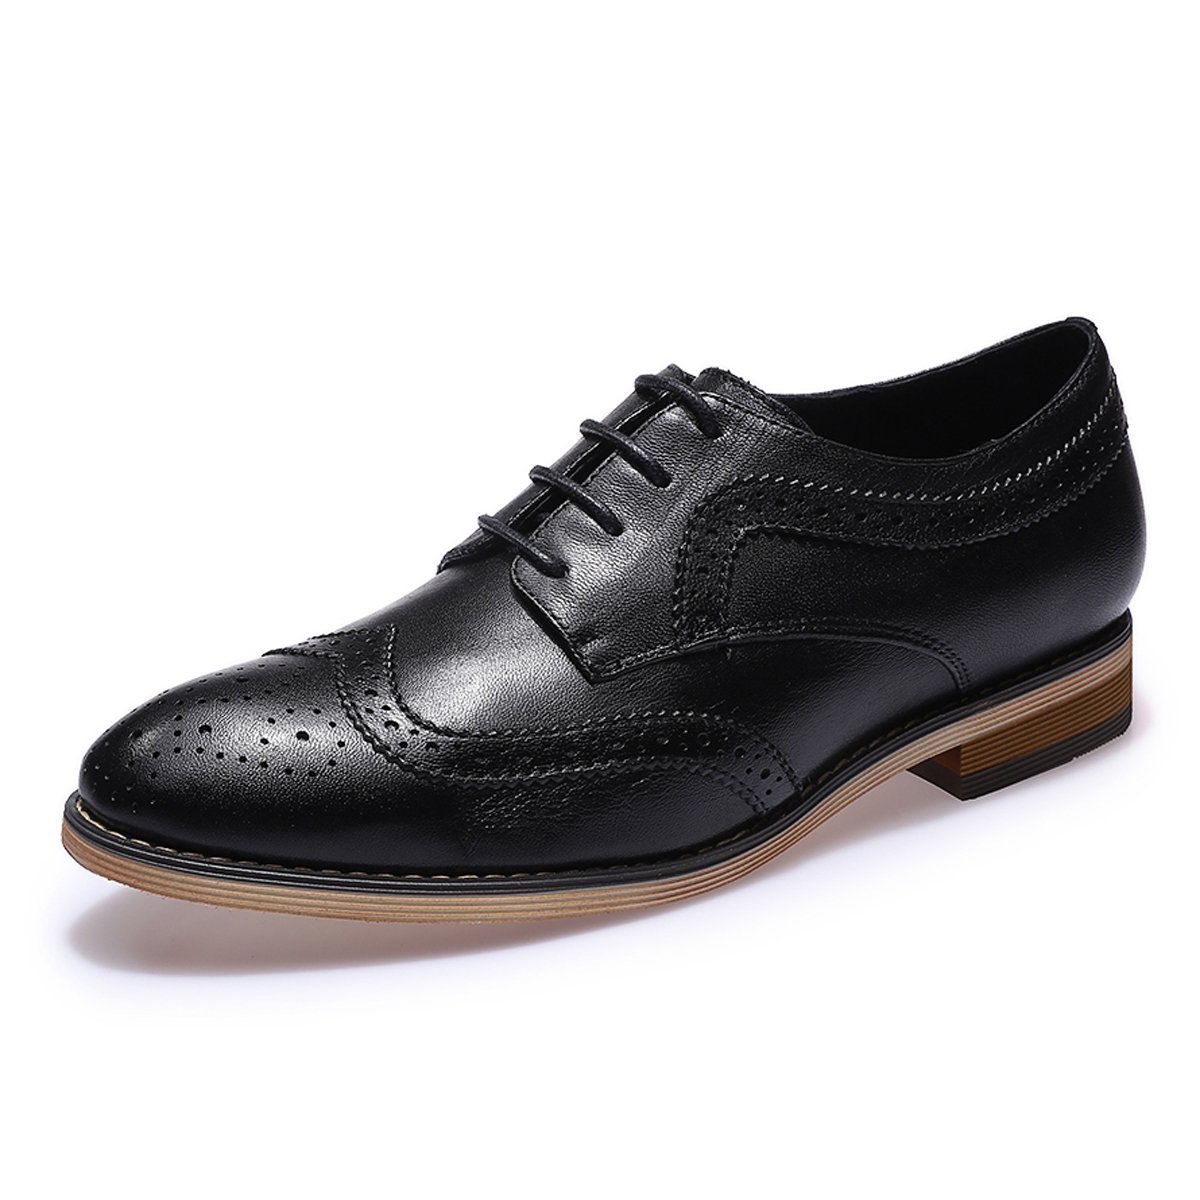 1940s Style Shoes, 40s Shoes Mona flying Womens Leather Perforated Lace-up Oxfords Brogue Wingtip Derby Saddle Shoes for Girls ladis Womens $89.99 AT vintagedancer.com